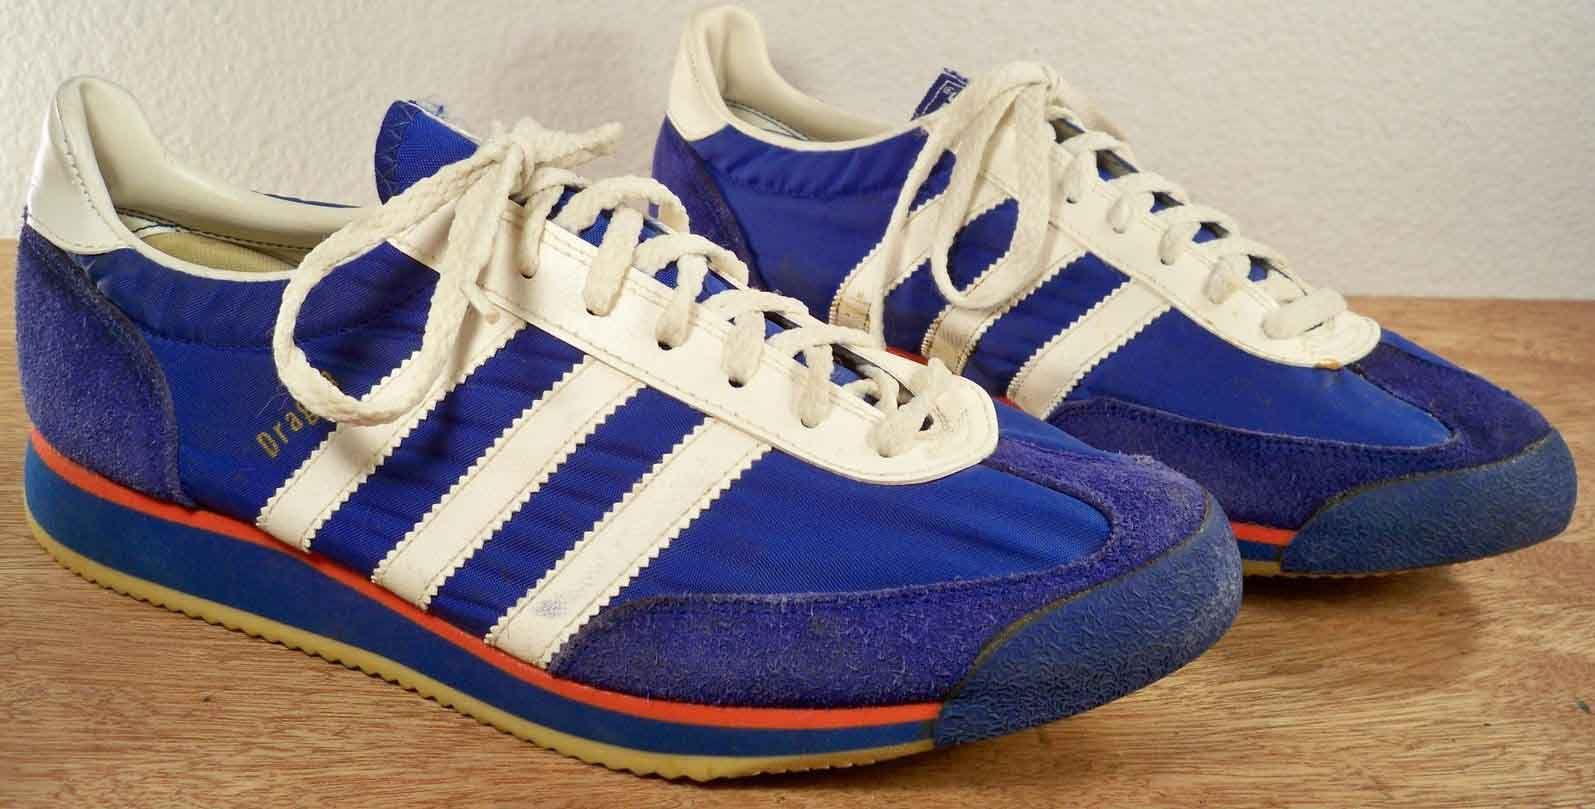 adidas dragon blue and white